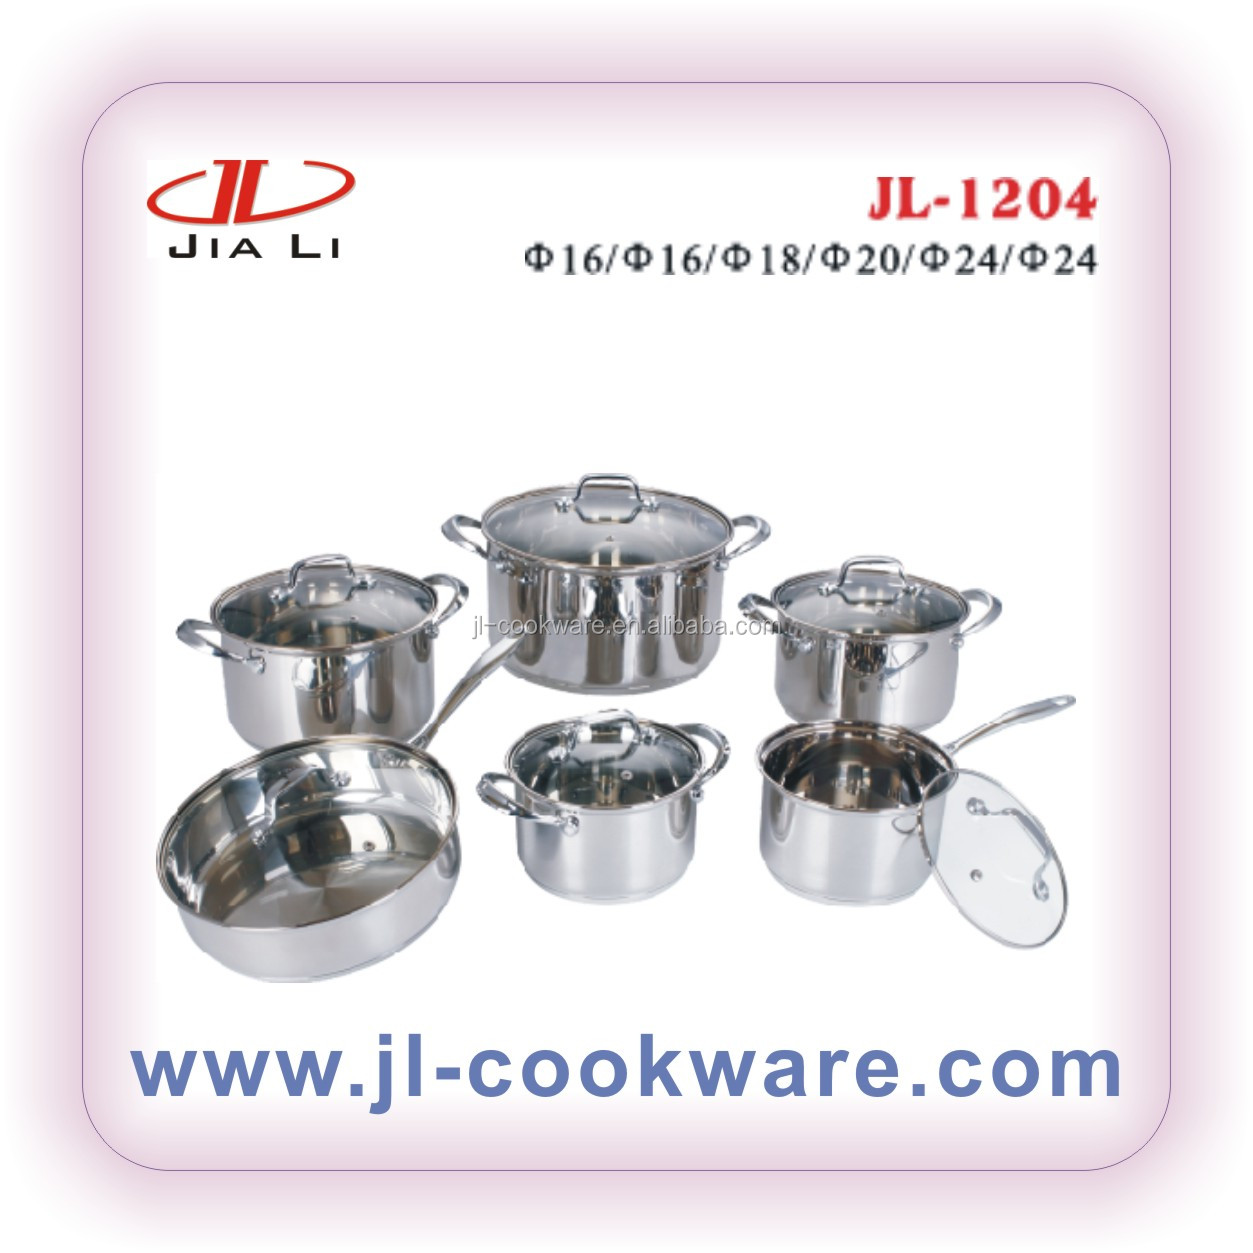 Good quality mayer boch kitchen cookware buy kitchen for Buy kitchen cookware